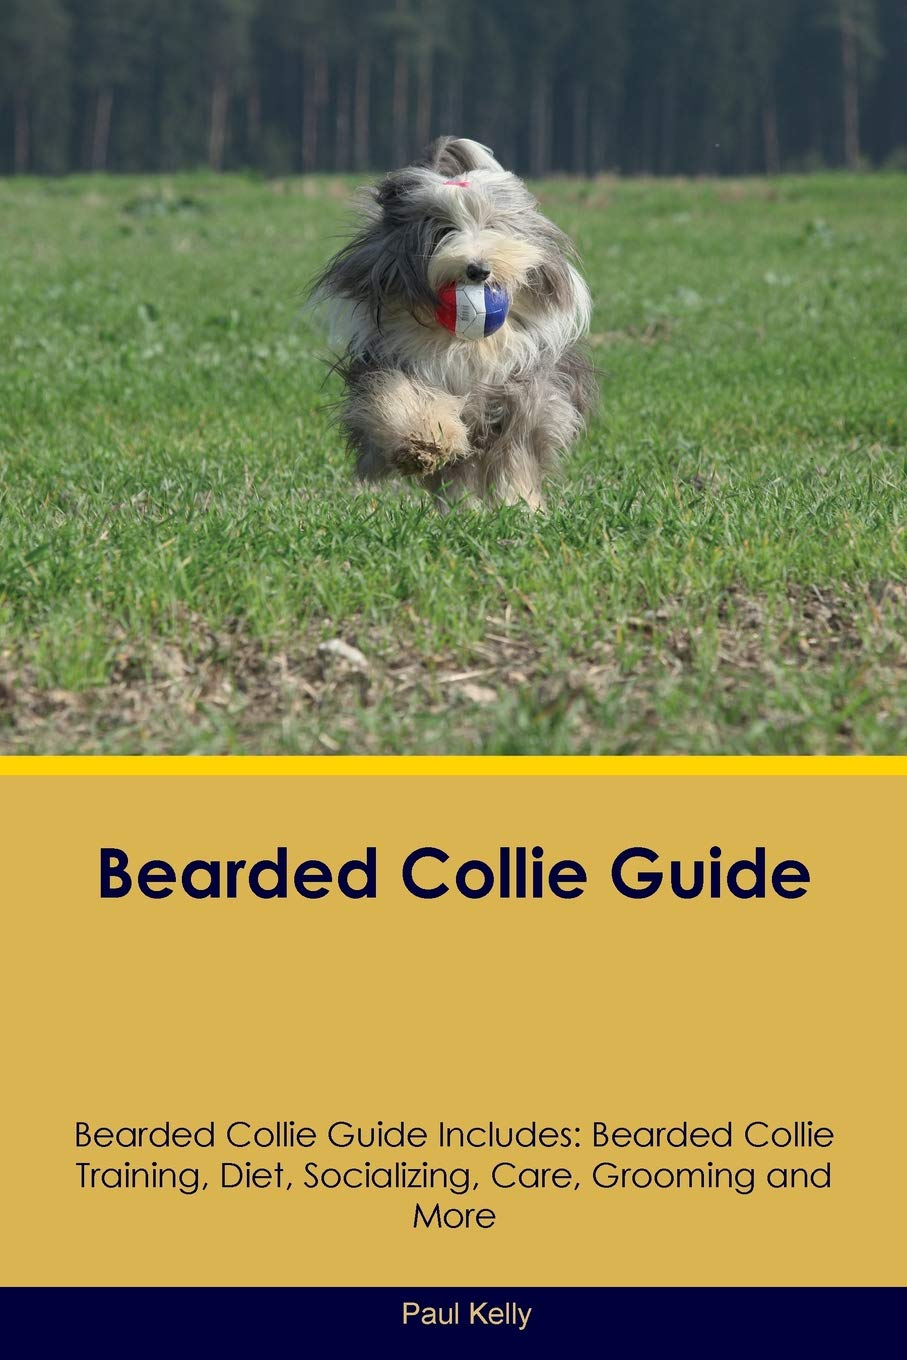 Bearded Collie Guide Bearded Collie Guide Includes: Bearded Collie Training, Diet, Socializing, Care, Grooming, Breeding and More